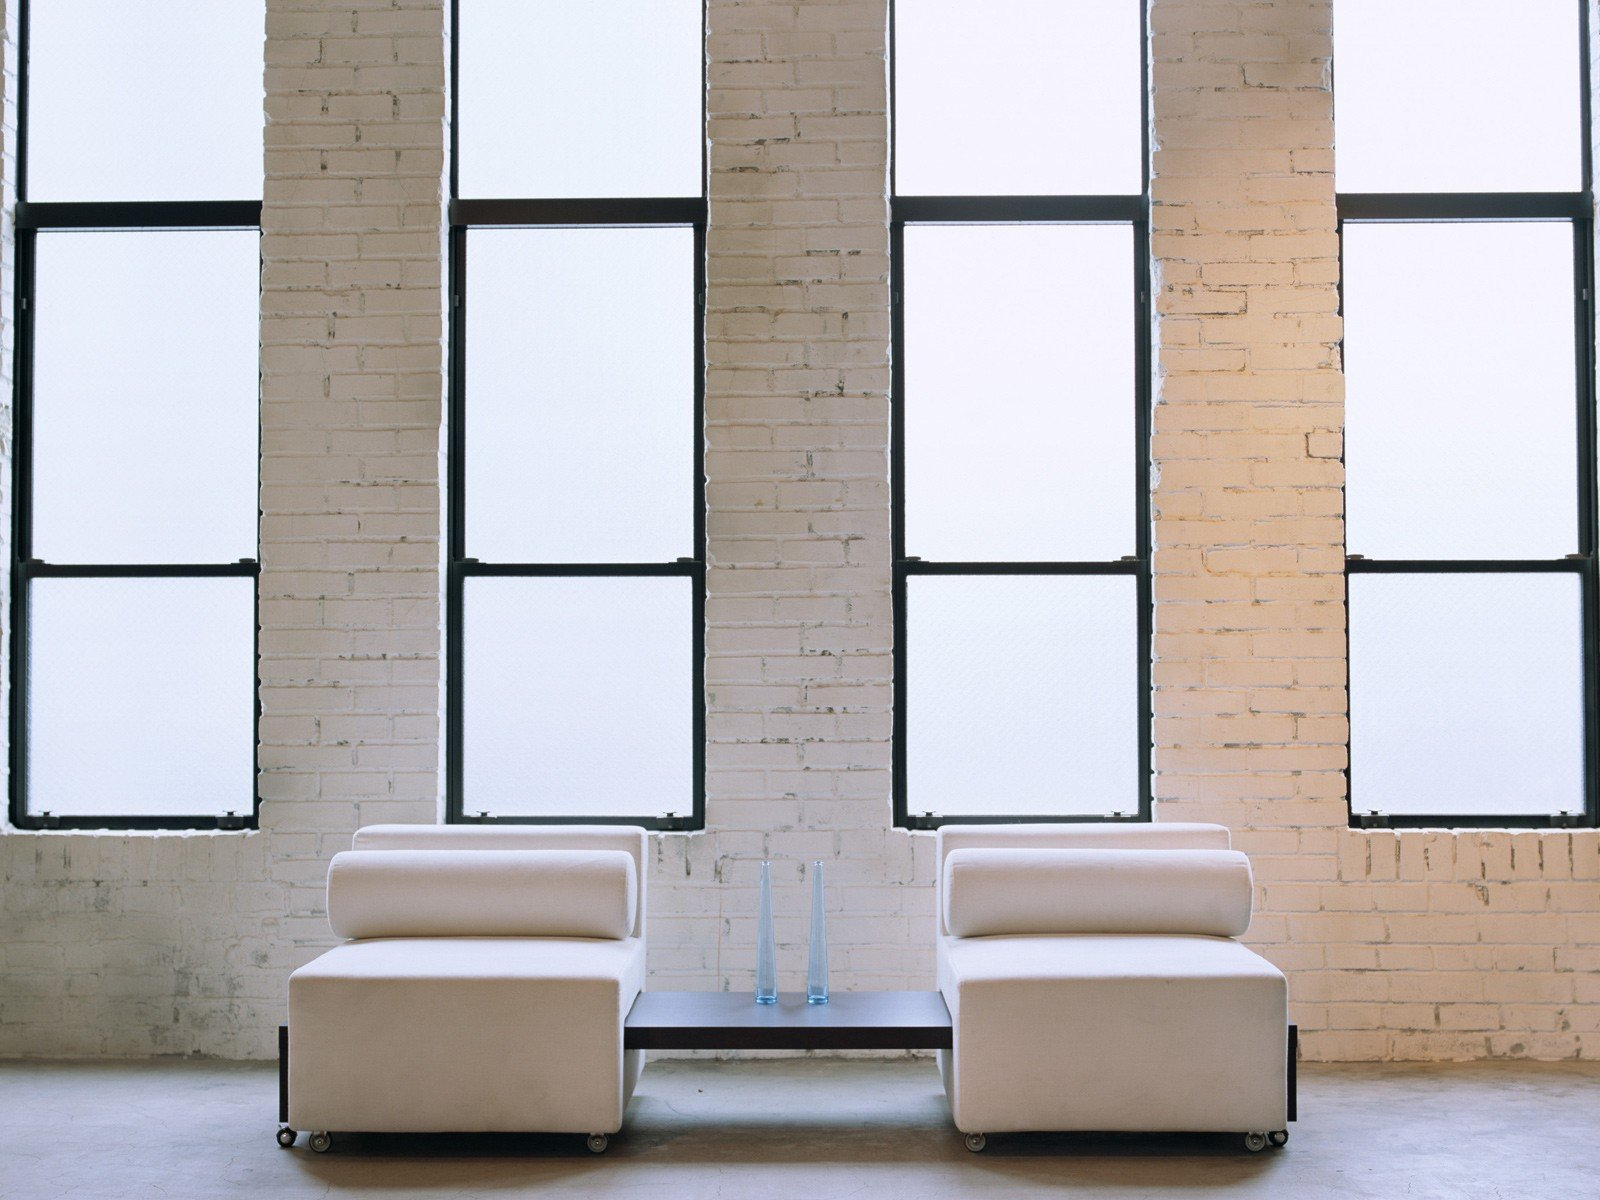 interior wall with window plexiglass chairs cushion window panes brick wall vases interior design wallpaper 1600x1200 263764 wallpaperup